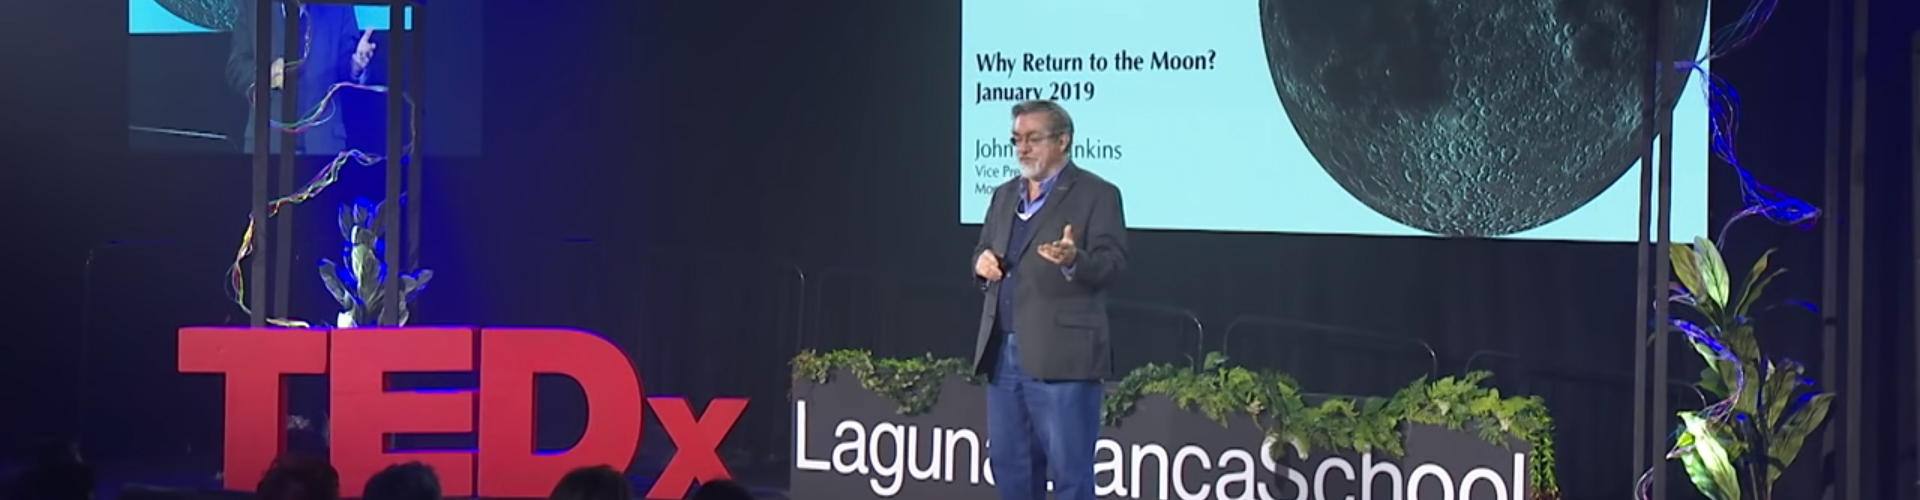 John Mankins at TEDxLagunaBlancaSchool, Why Return to the Moon?